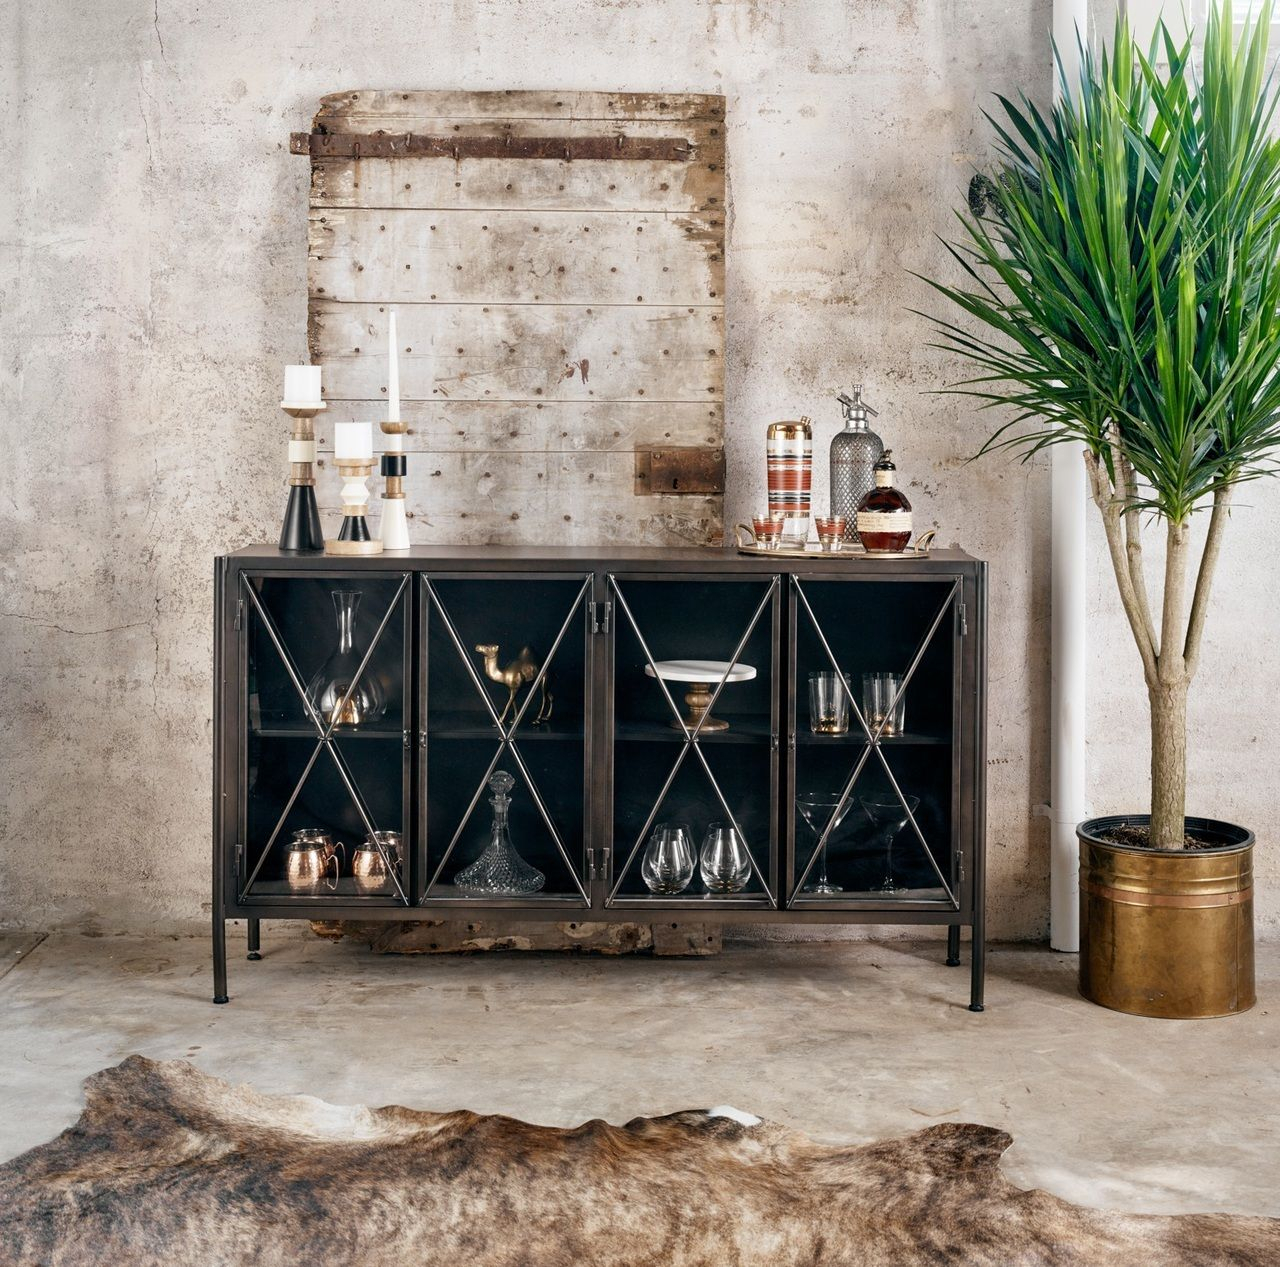 Aged Black Metal Media Console Sideboard | Decorate|furnishings In Walters Media Console Tables (View 7 of 30)